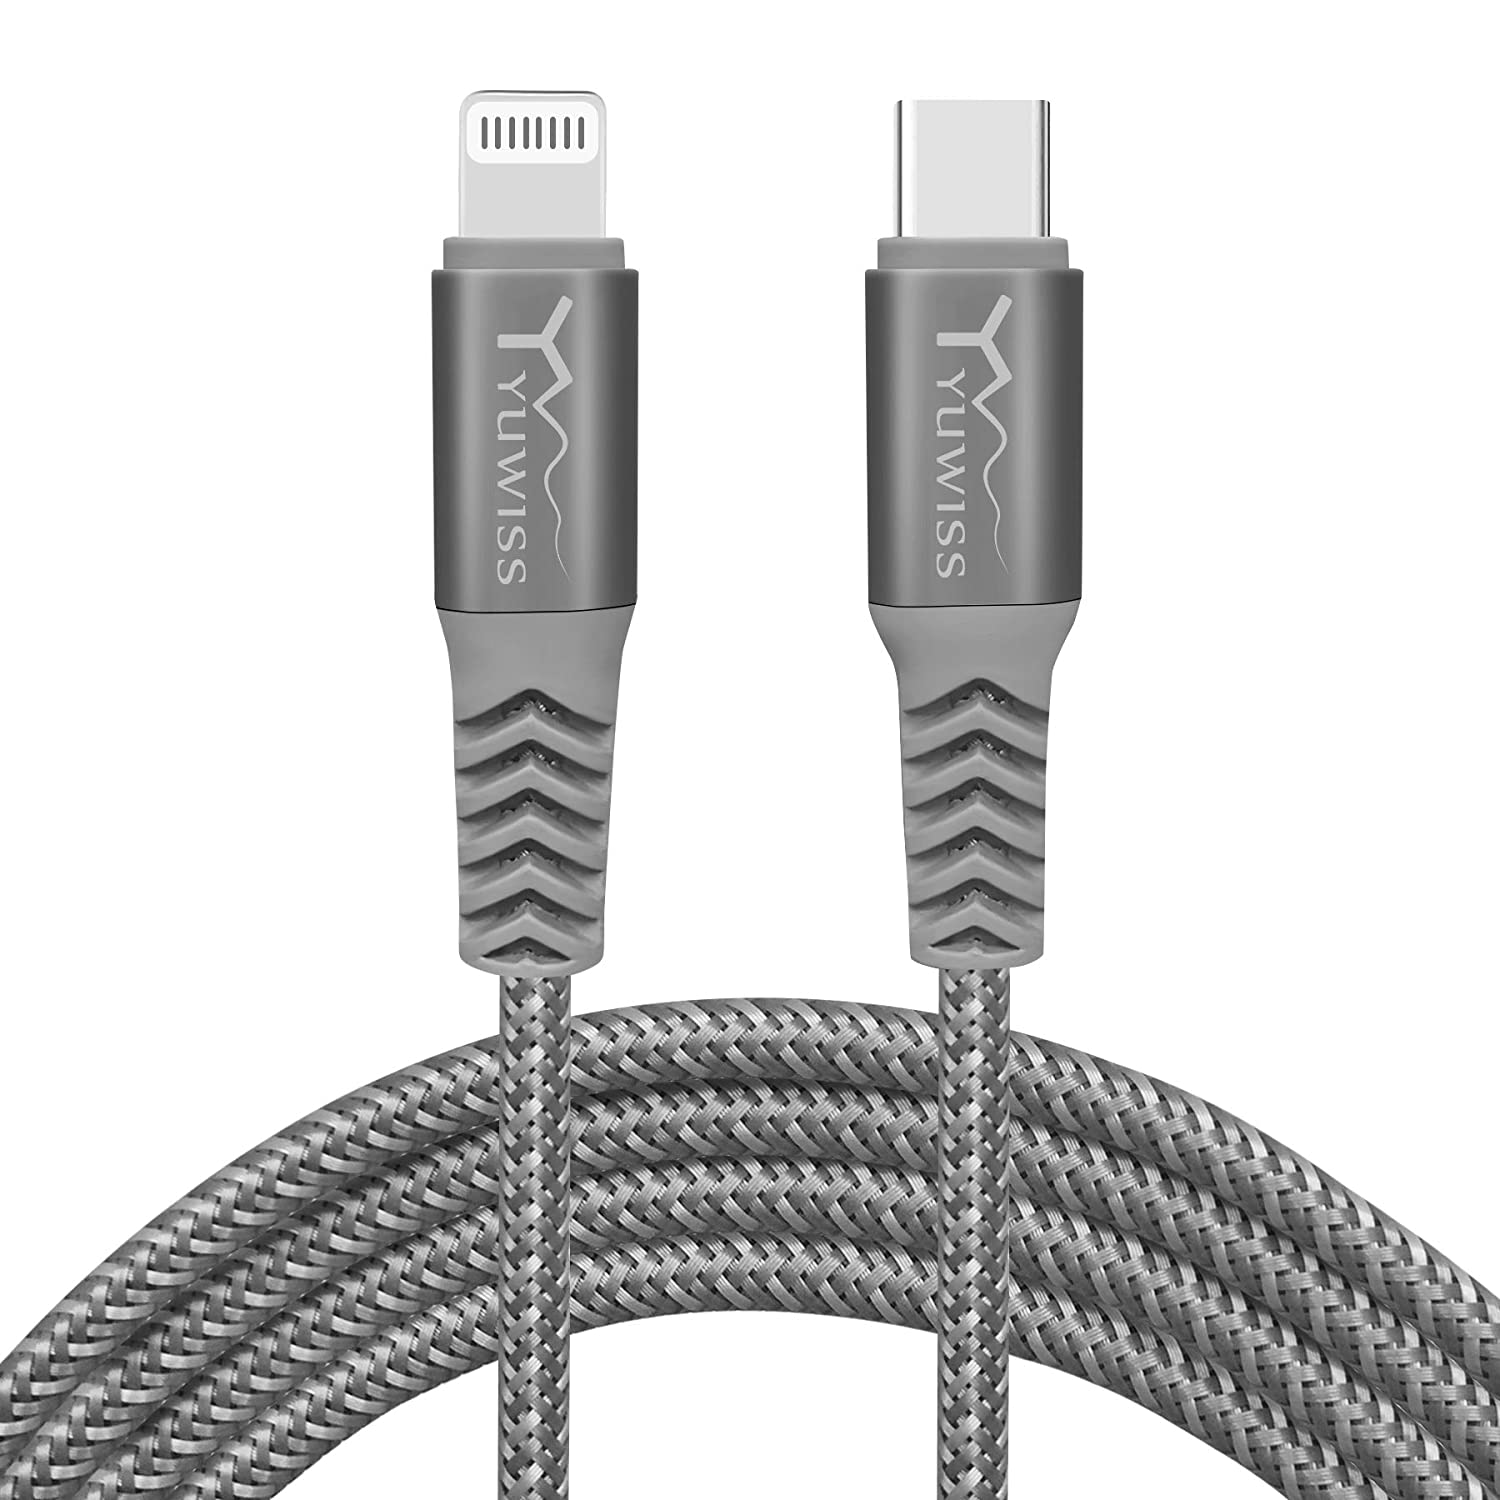 USB C to iPhone Charger Cord, [Apple MFi Certified] YW YUWISS 6 Feet Type C to Lightning Cable Fast Charging Compatible with iPhone 12/11/Pro/X/Xs Max/XR/8 Plus /7 Plus/6s/ iPad and More